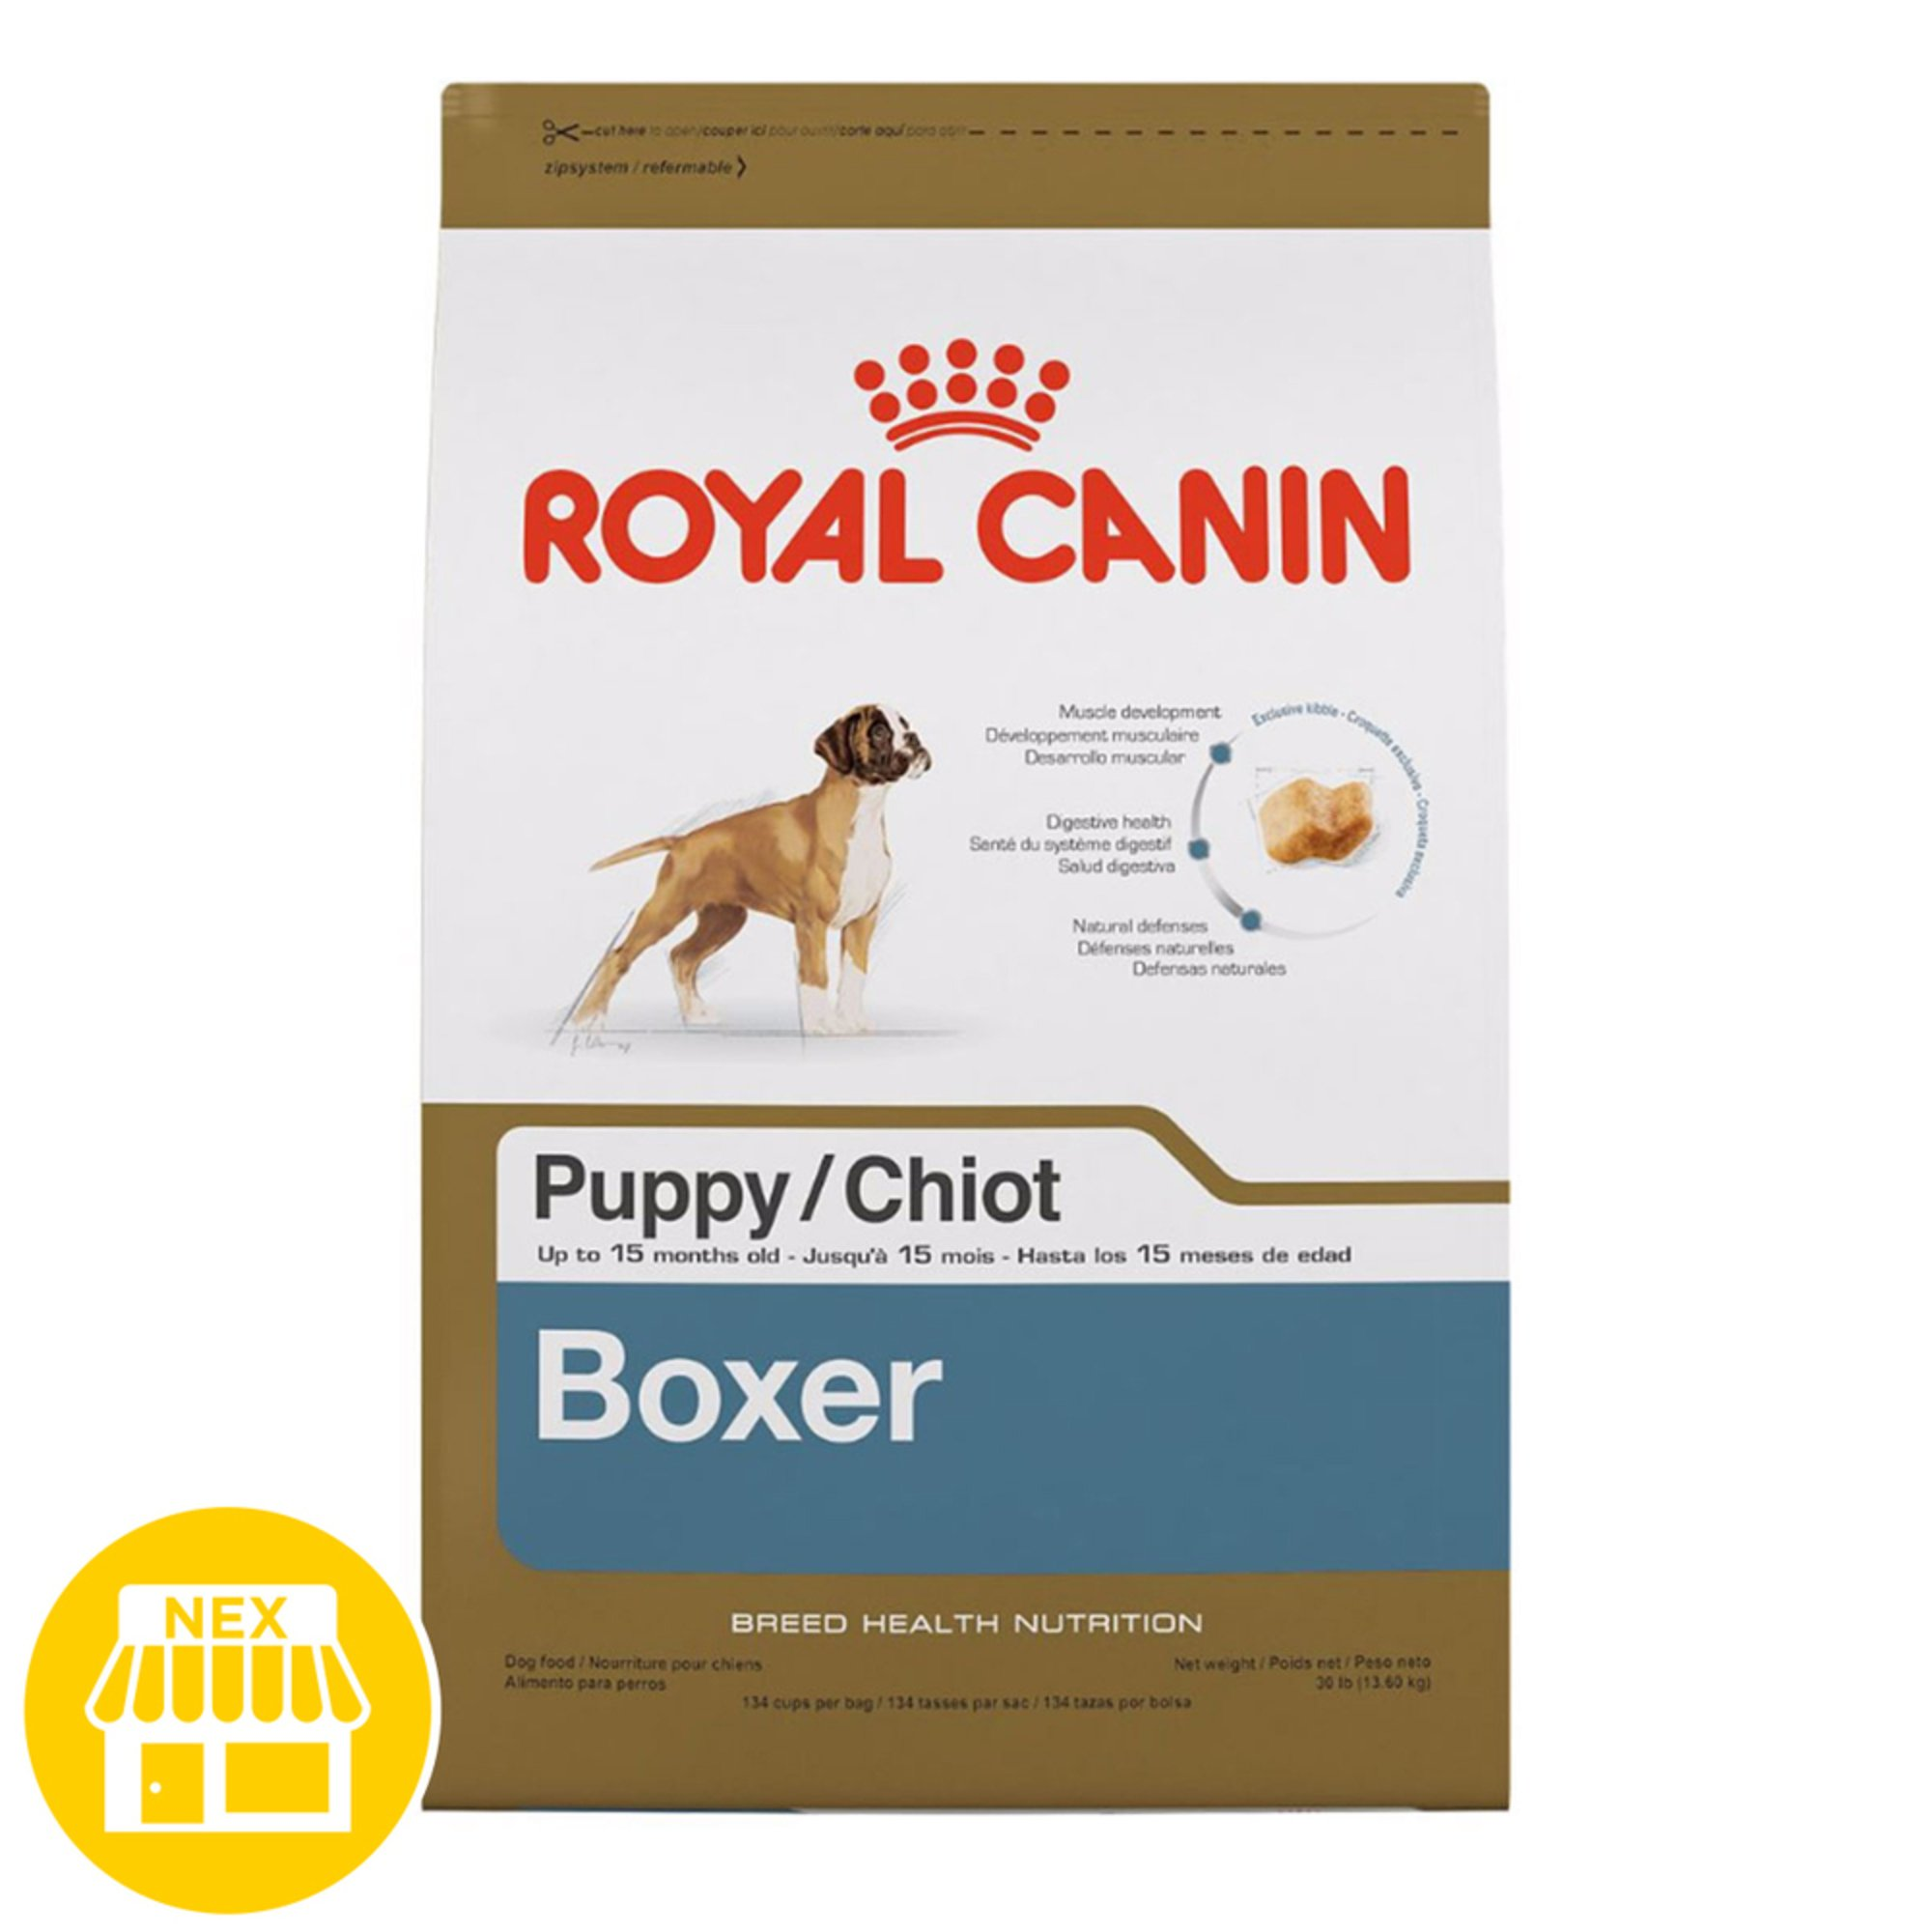 royal canin boxer puppy dry dog food 30 lbs dog food pet shop your navy exchange. Black Bedroom Furniture Sets. Home Design Ideas